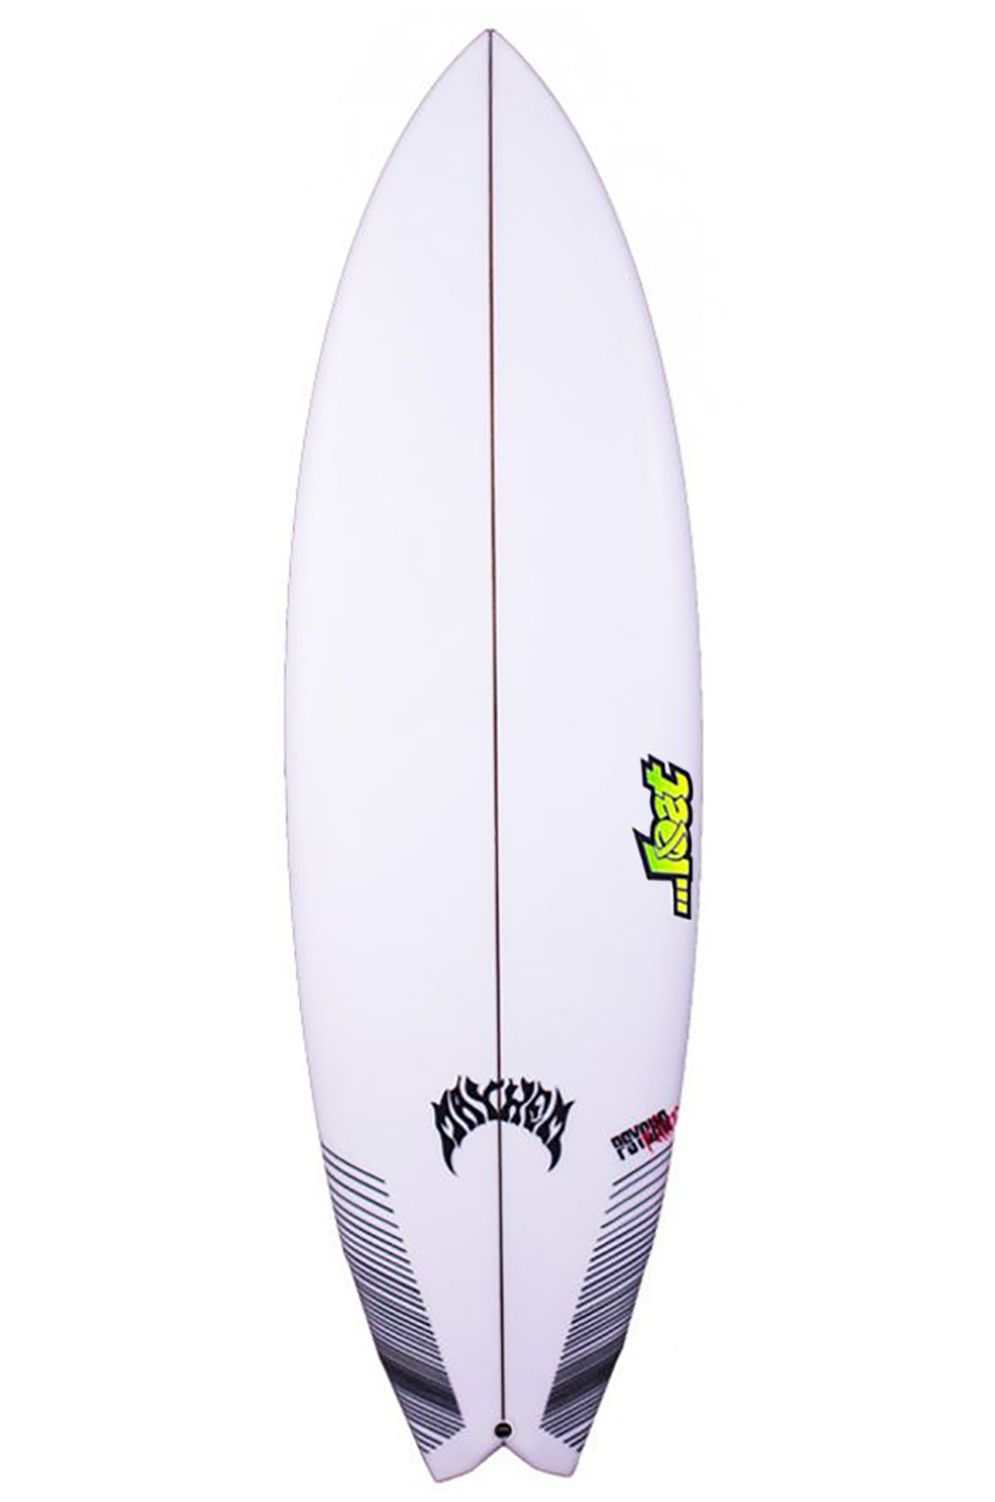 Prancha Surf Lost 5'9 PSYCHO KILLER Swallow Tail - White FCS II Multisystem 5ft9